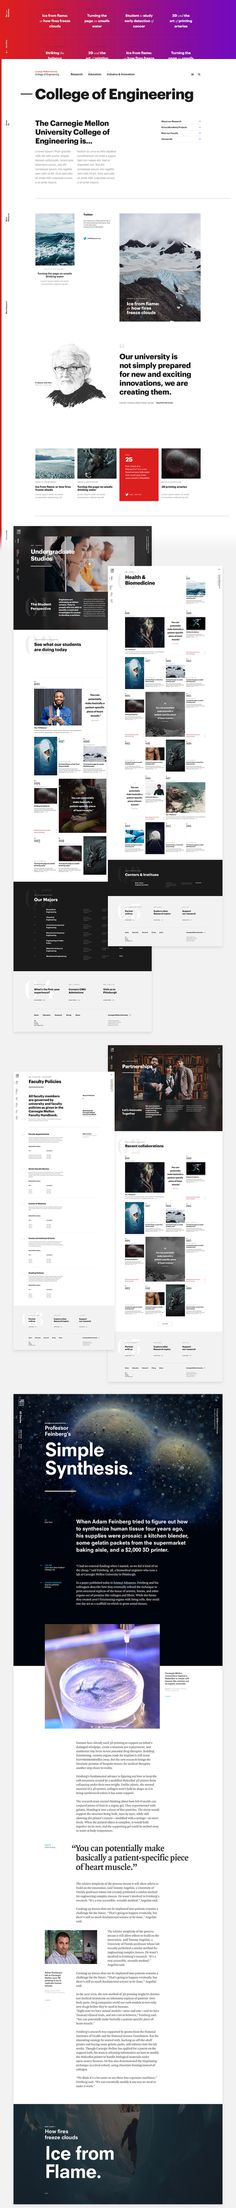 CMU School of Engineering on Behance